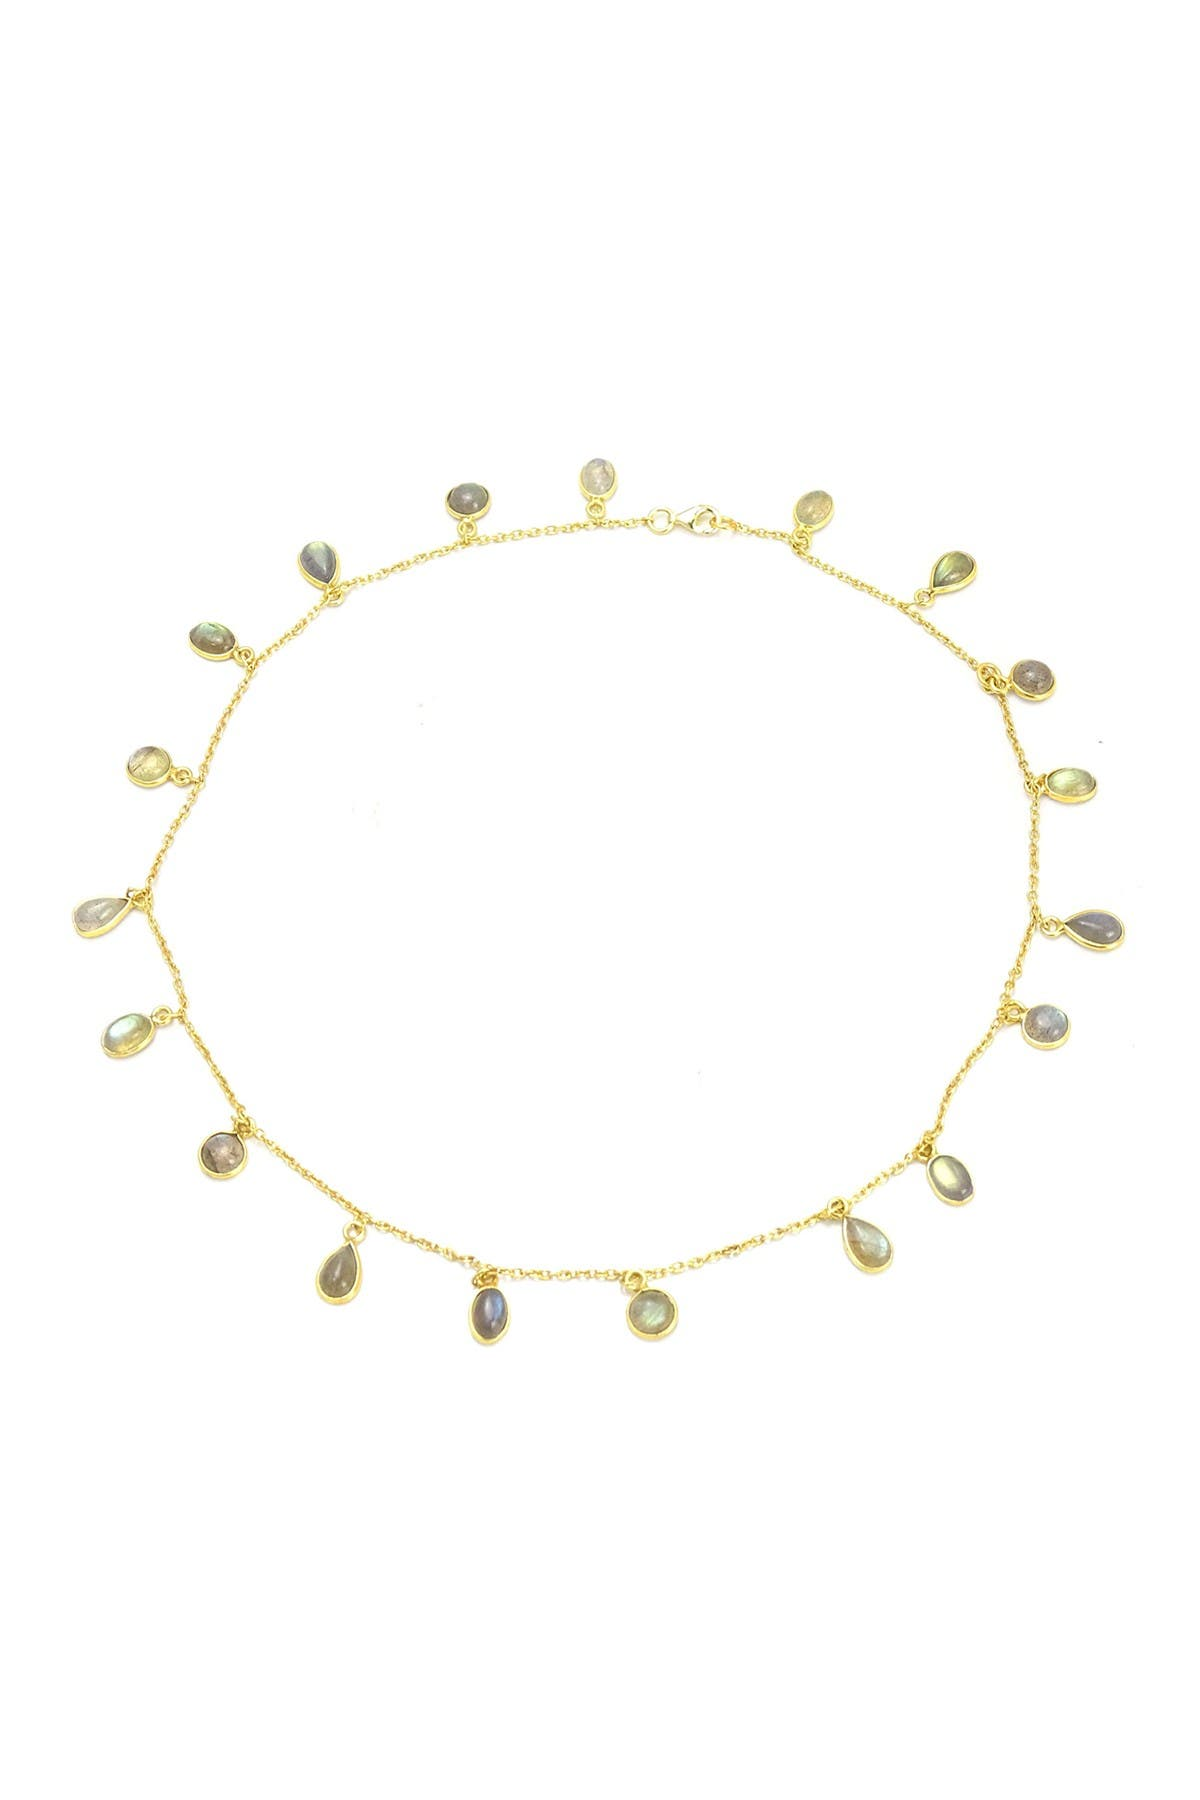 Savvy Cie 18K Yellow Gold Vermeil Riviera Gemstone Necklace at Nordstrom Rack